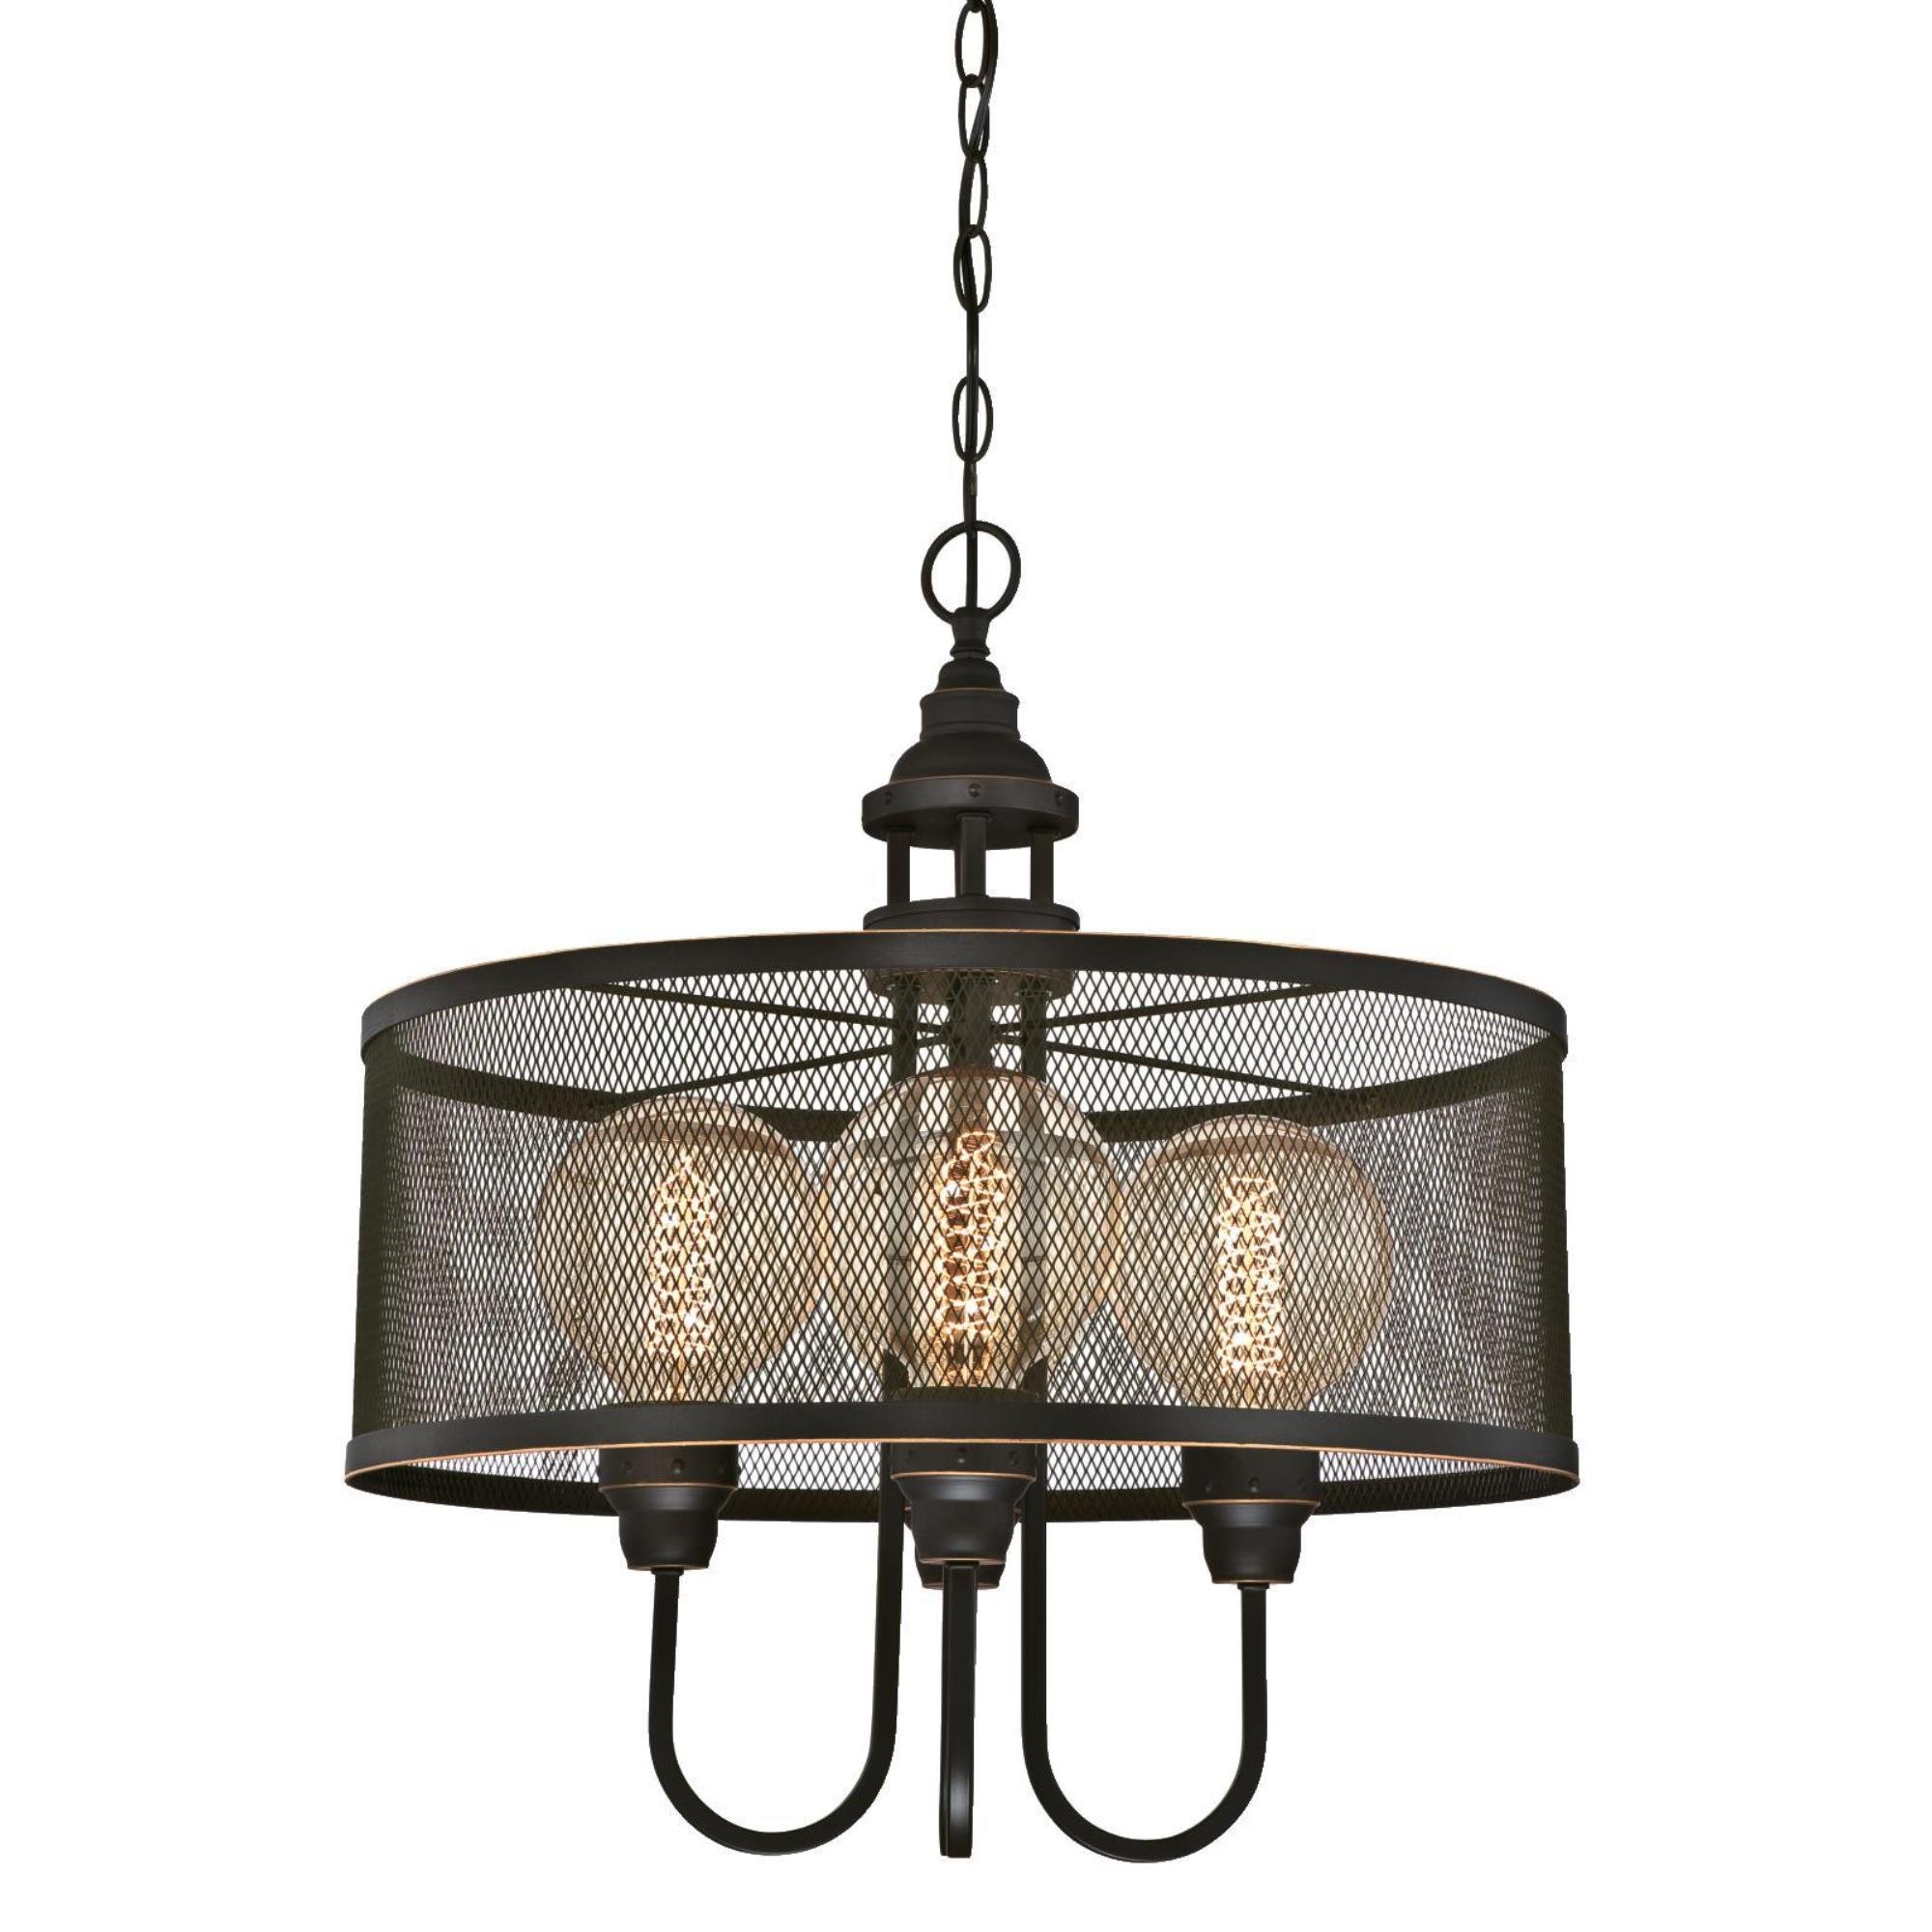 Westinghouse 6332900 Walter Four-Light Indoor Chandelier, Oil Rubbed Bronze Finish with Highlights and Mesh Shade